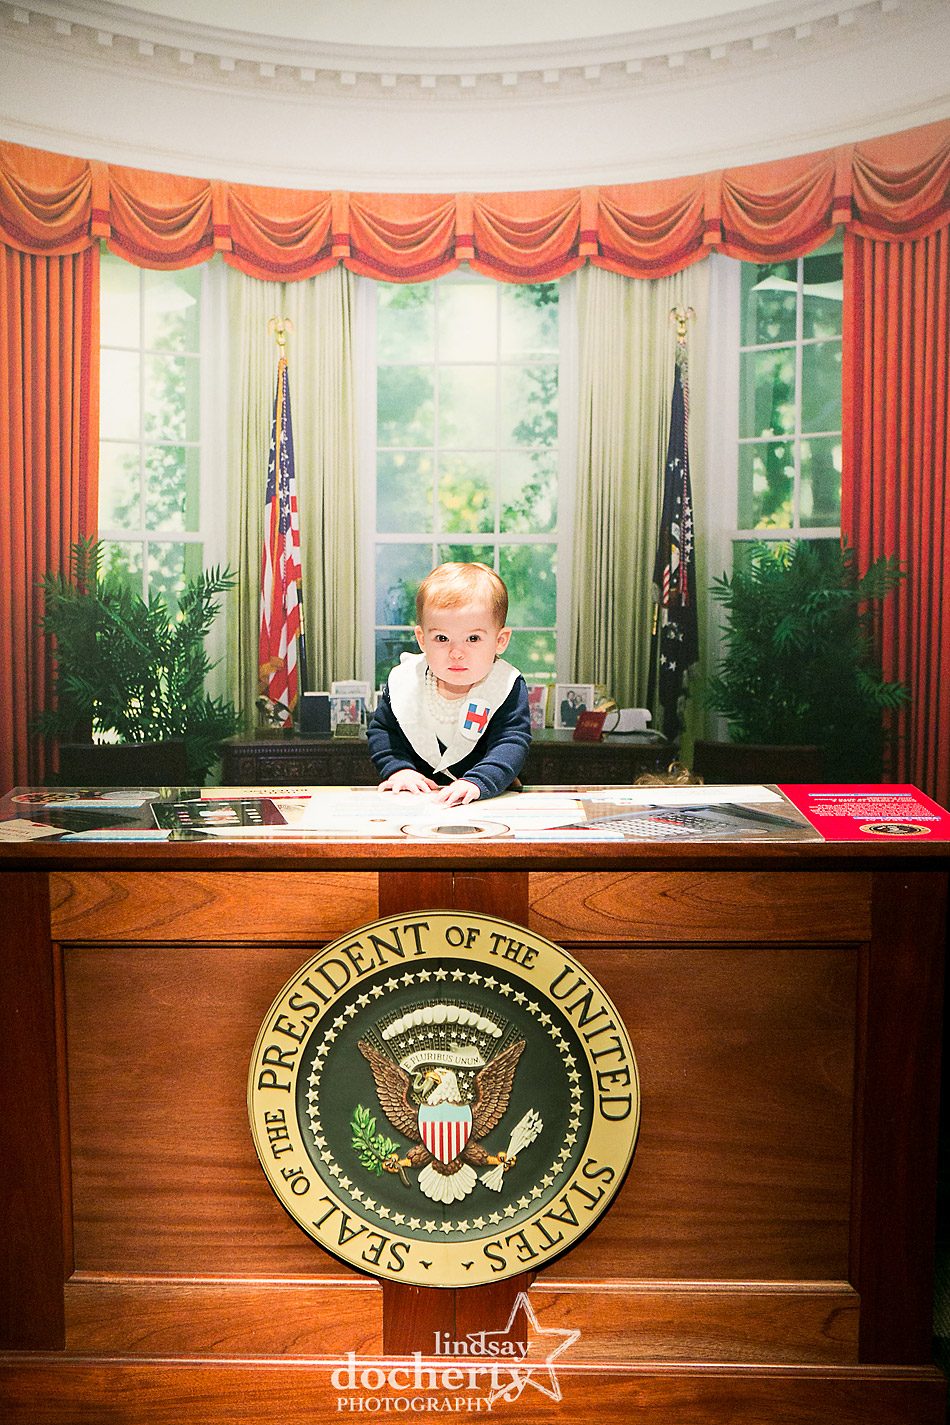 Baby Hillary Clinton in Oval Office